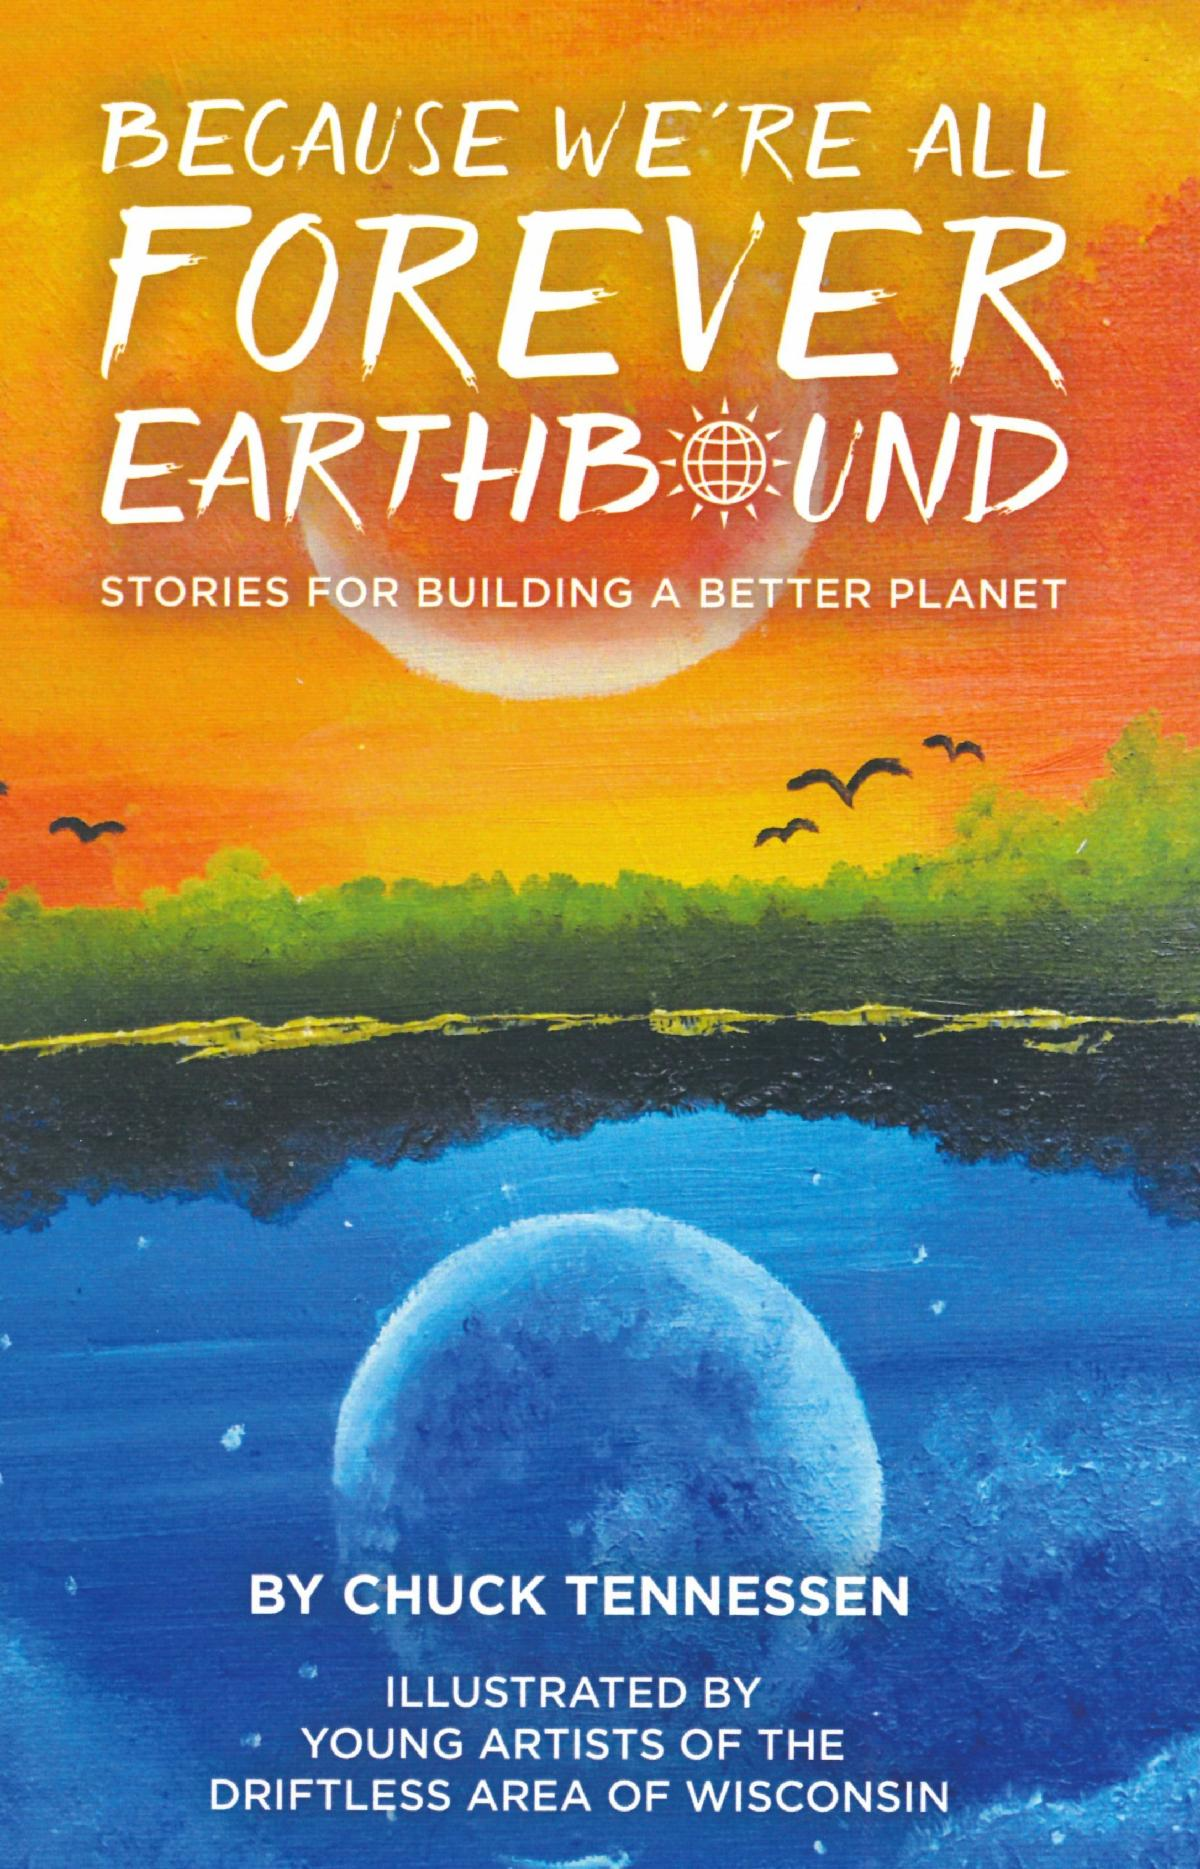 Forever earthbound cover image